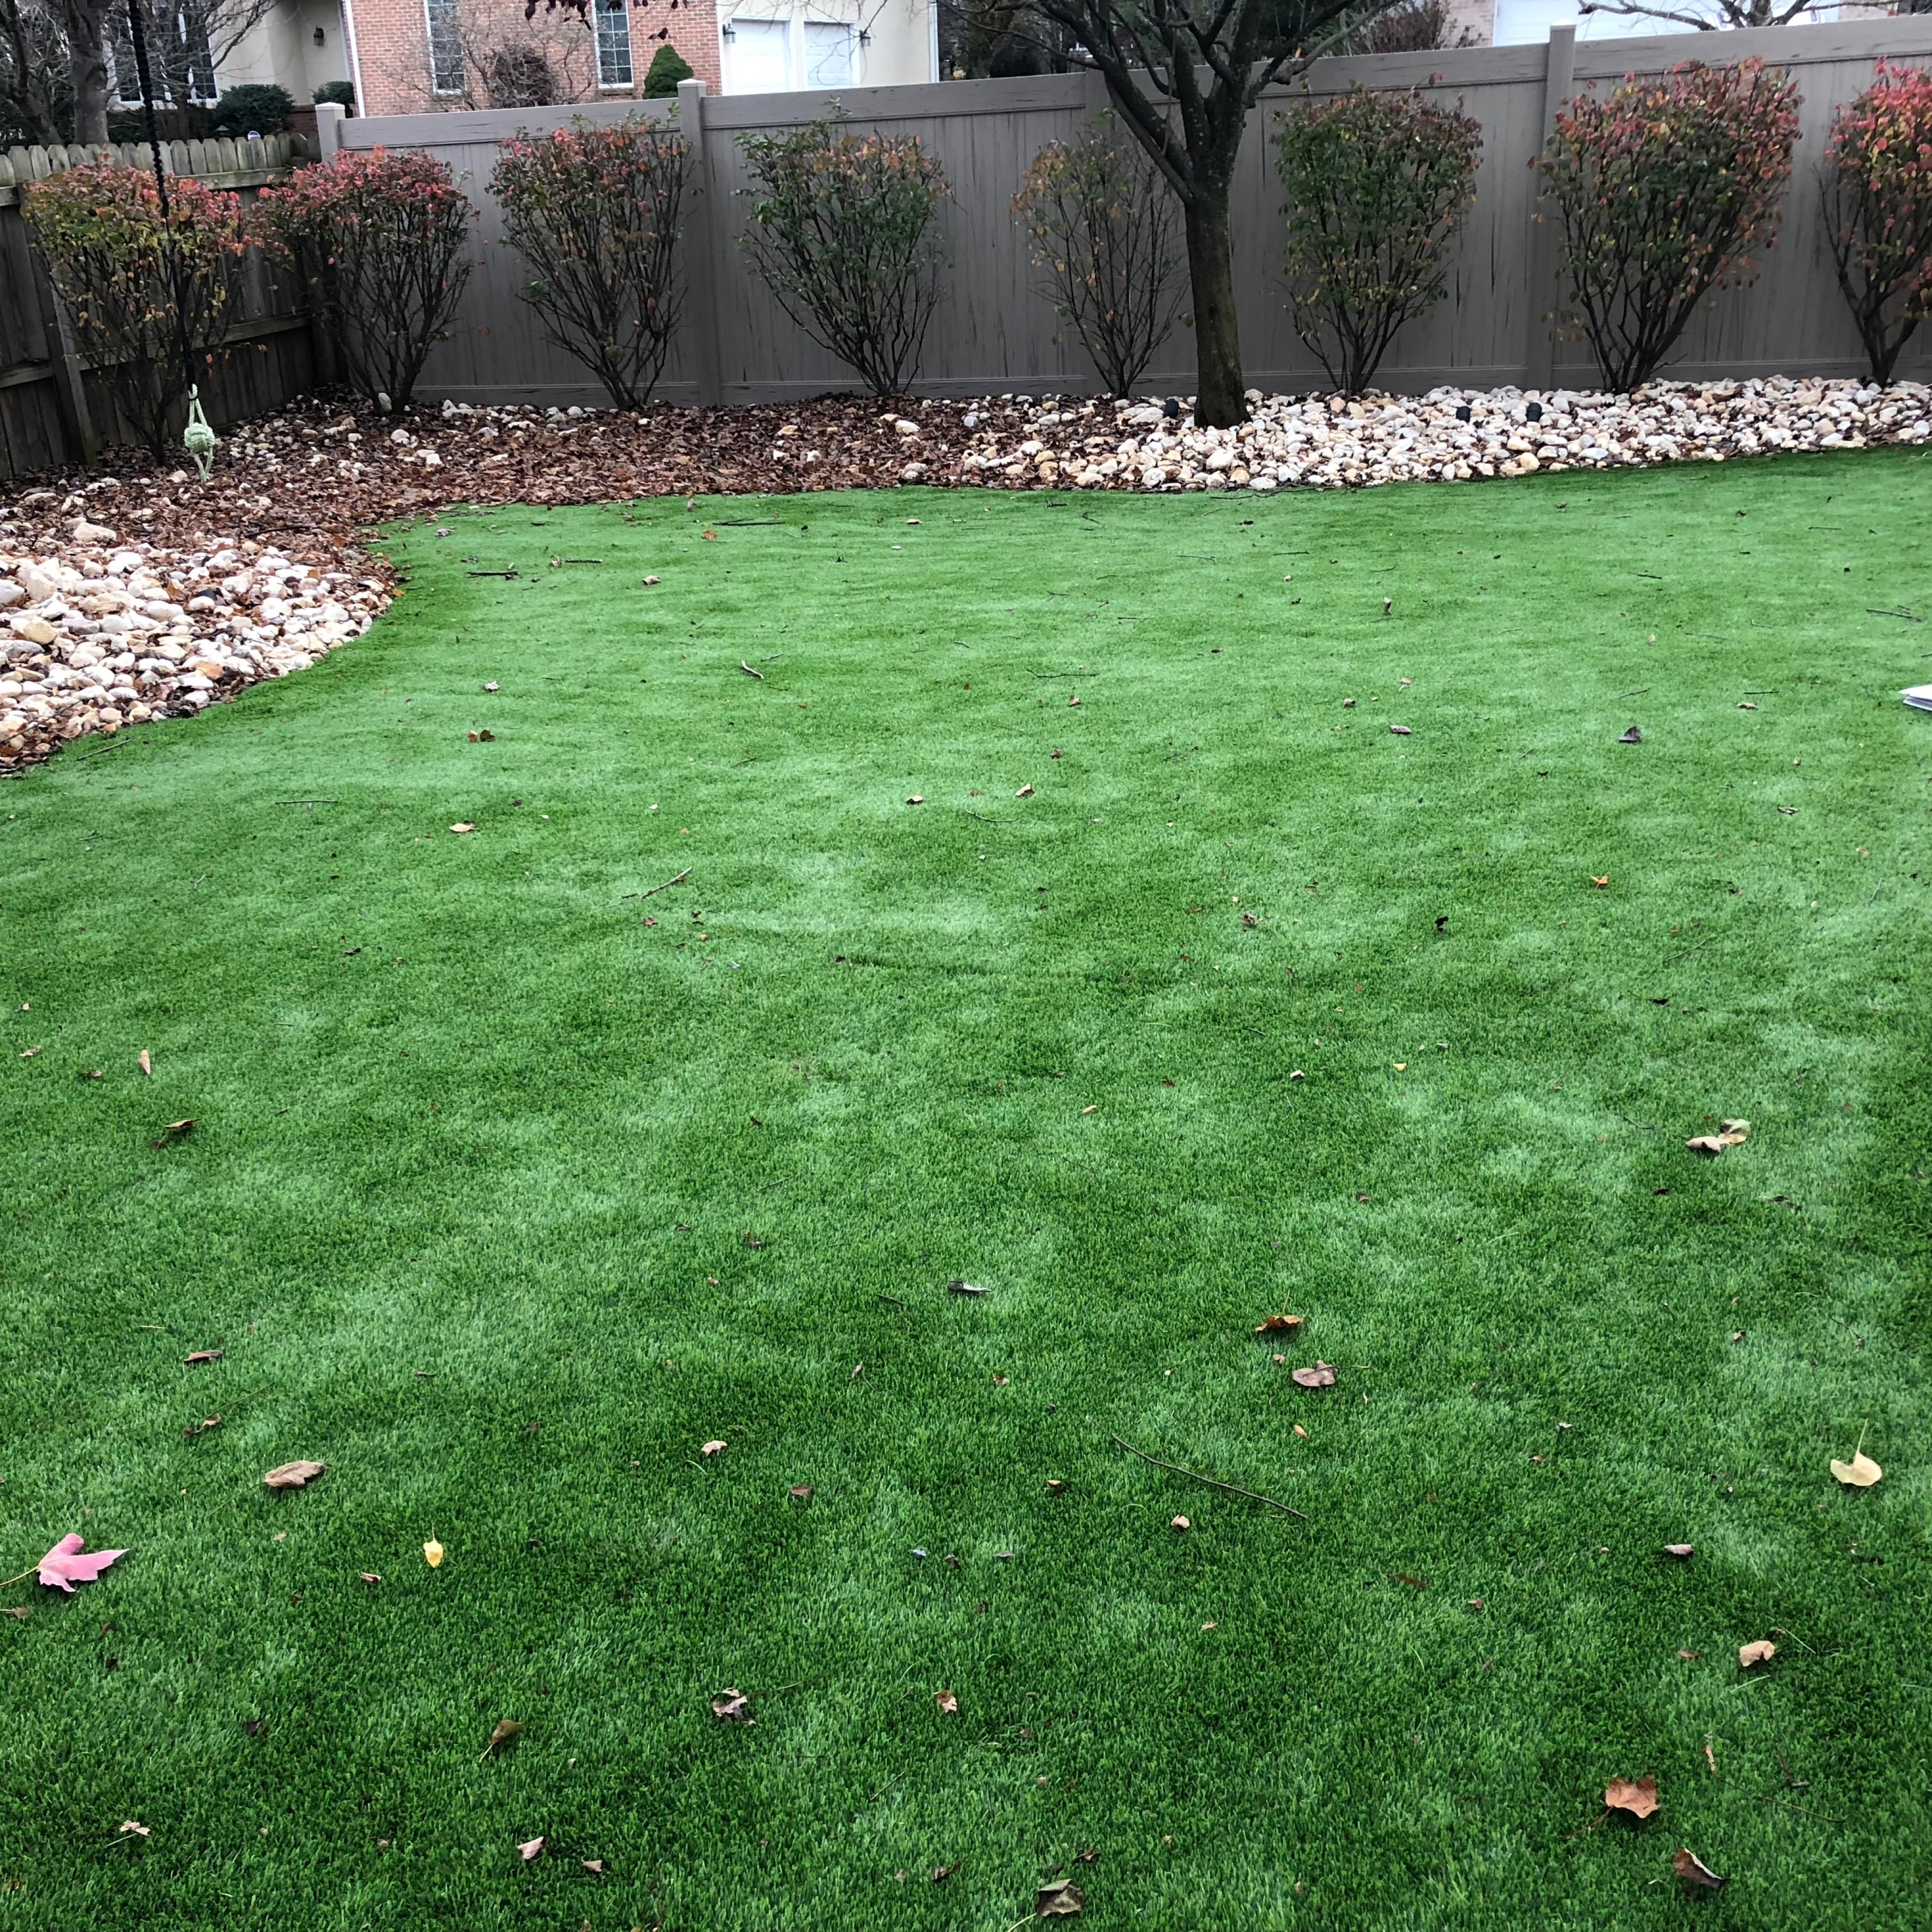 Emerald-92 Stemgrass artificial grass,fake grass,synthetic grass,grass carpet,artificial grass rug,artificial grass,fake grass,synthetic grass,grass carpet,artificial grass rug,real grass,most realistic artificial grass,realistic artificial grass